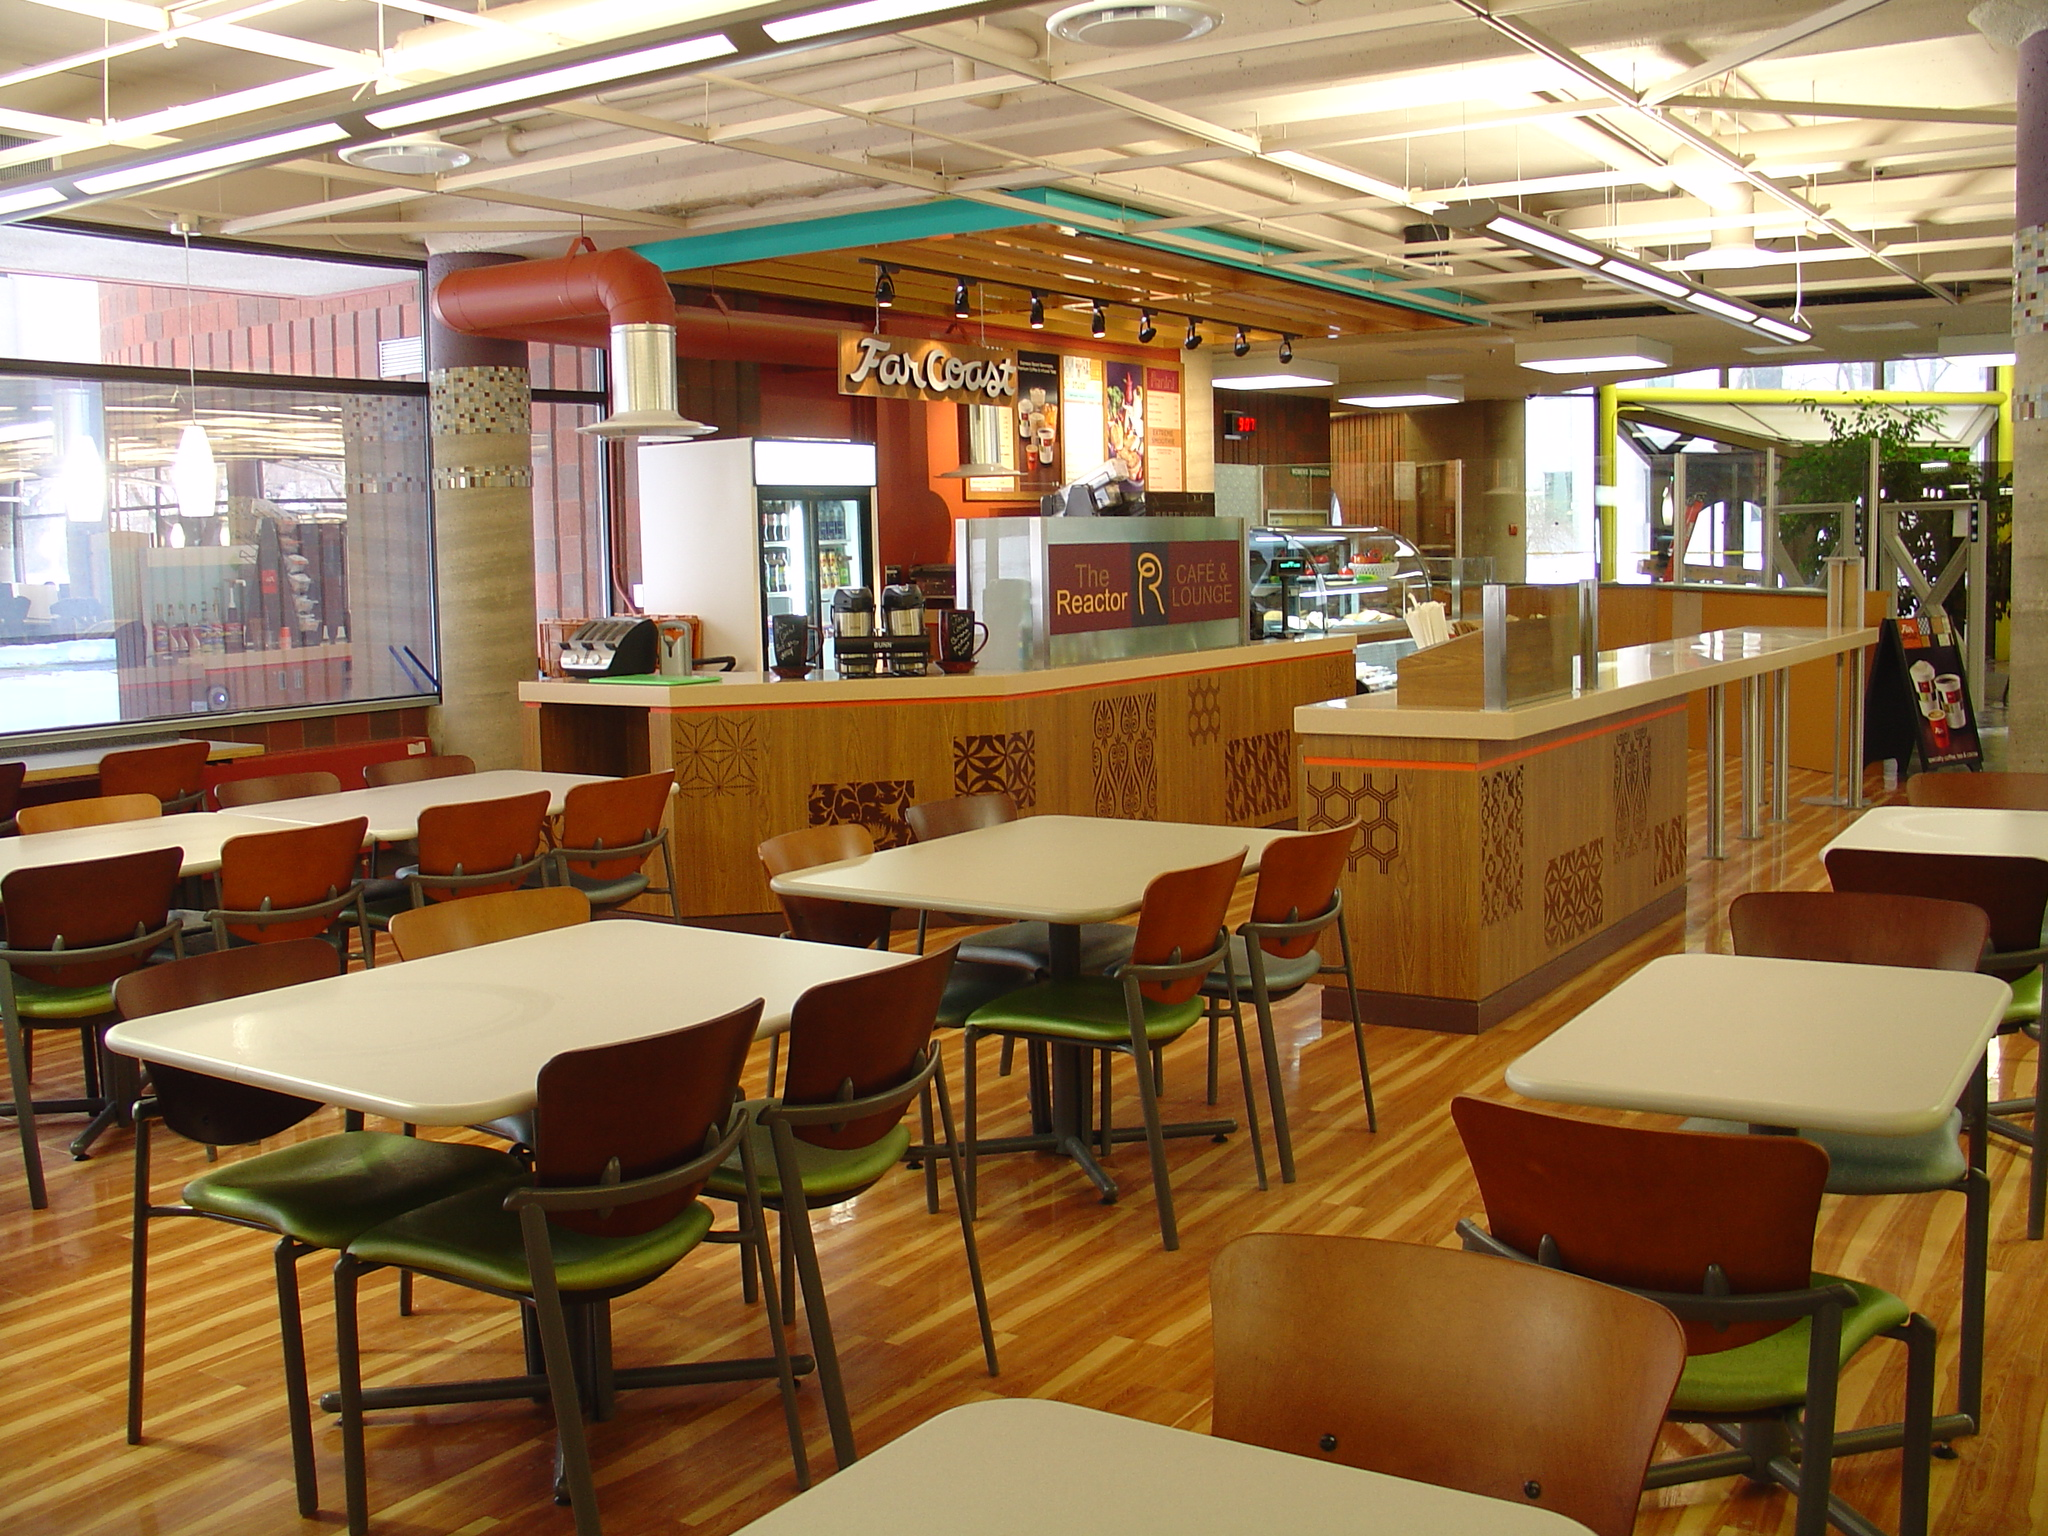 View of table and seating with cafe in the background